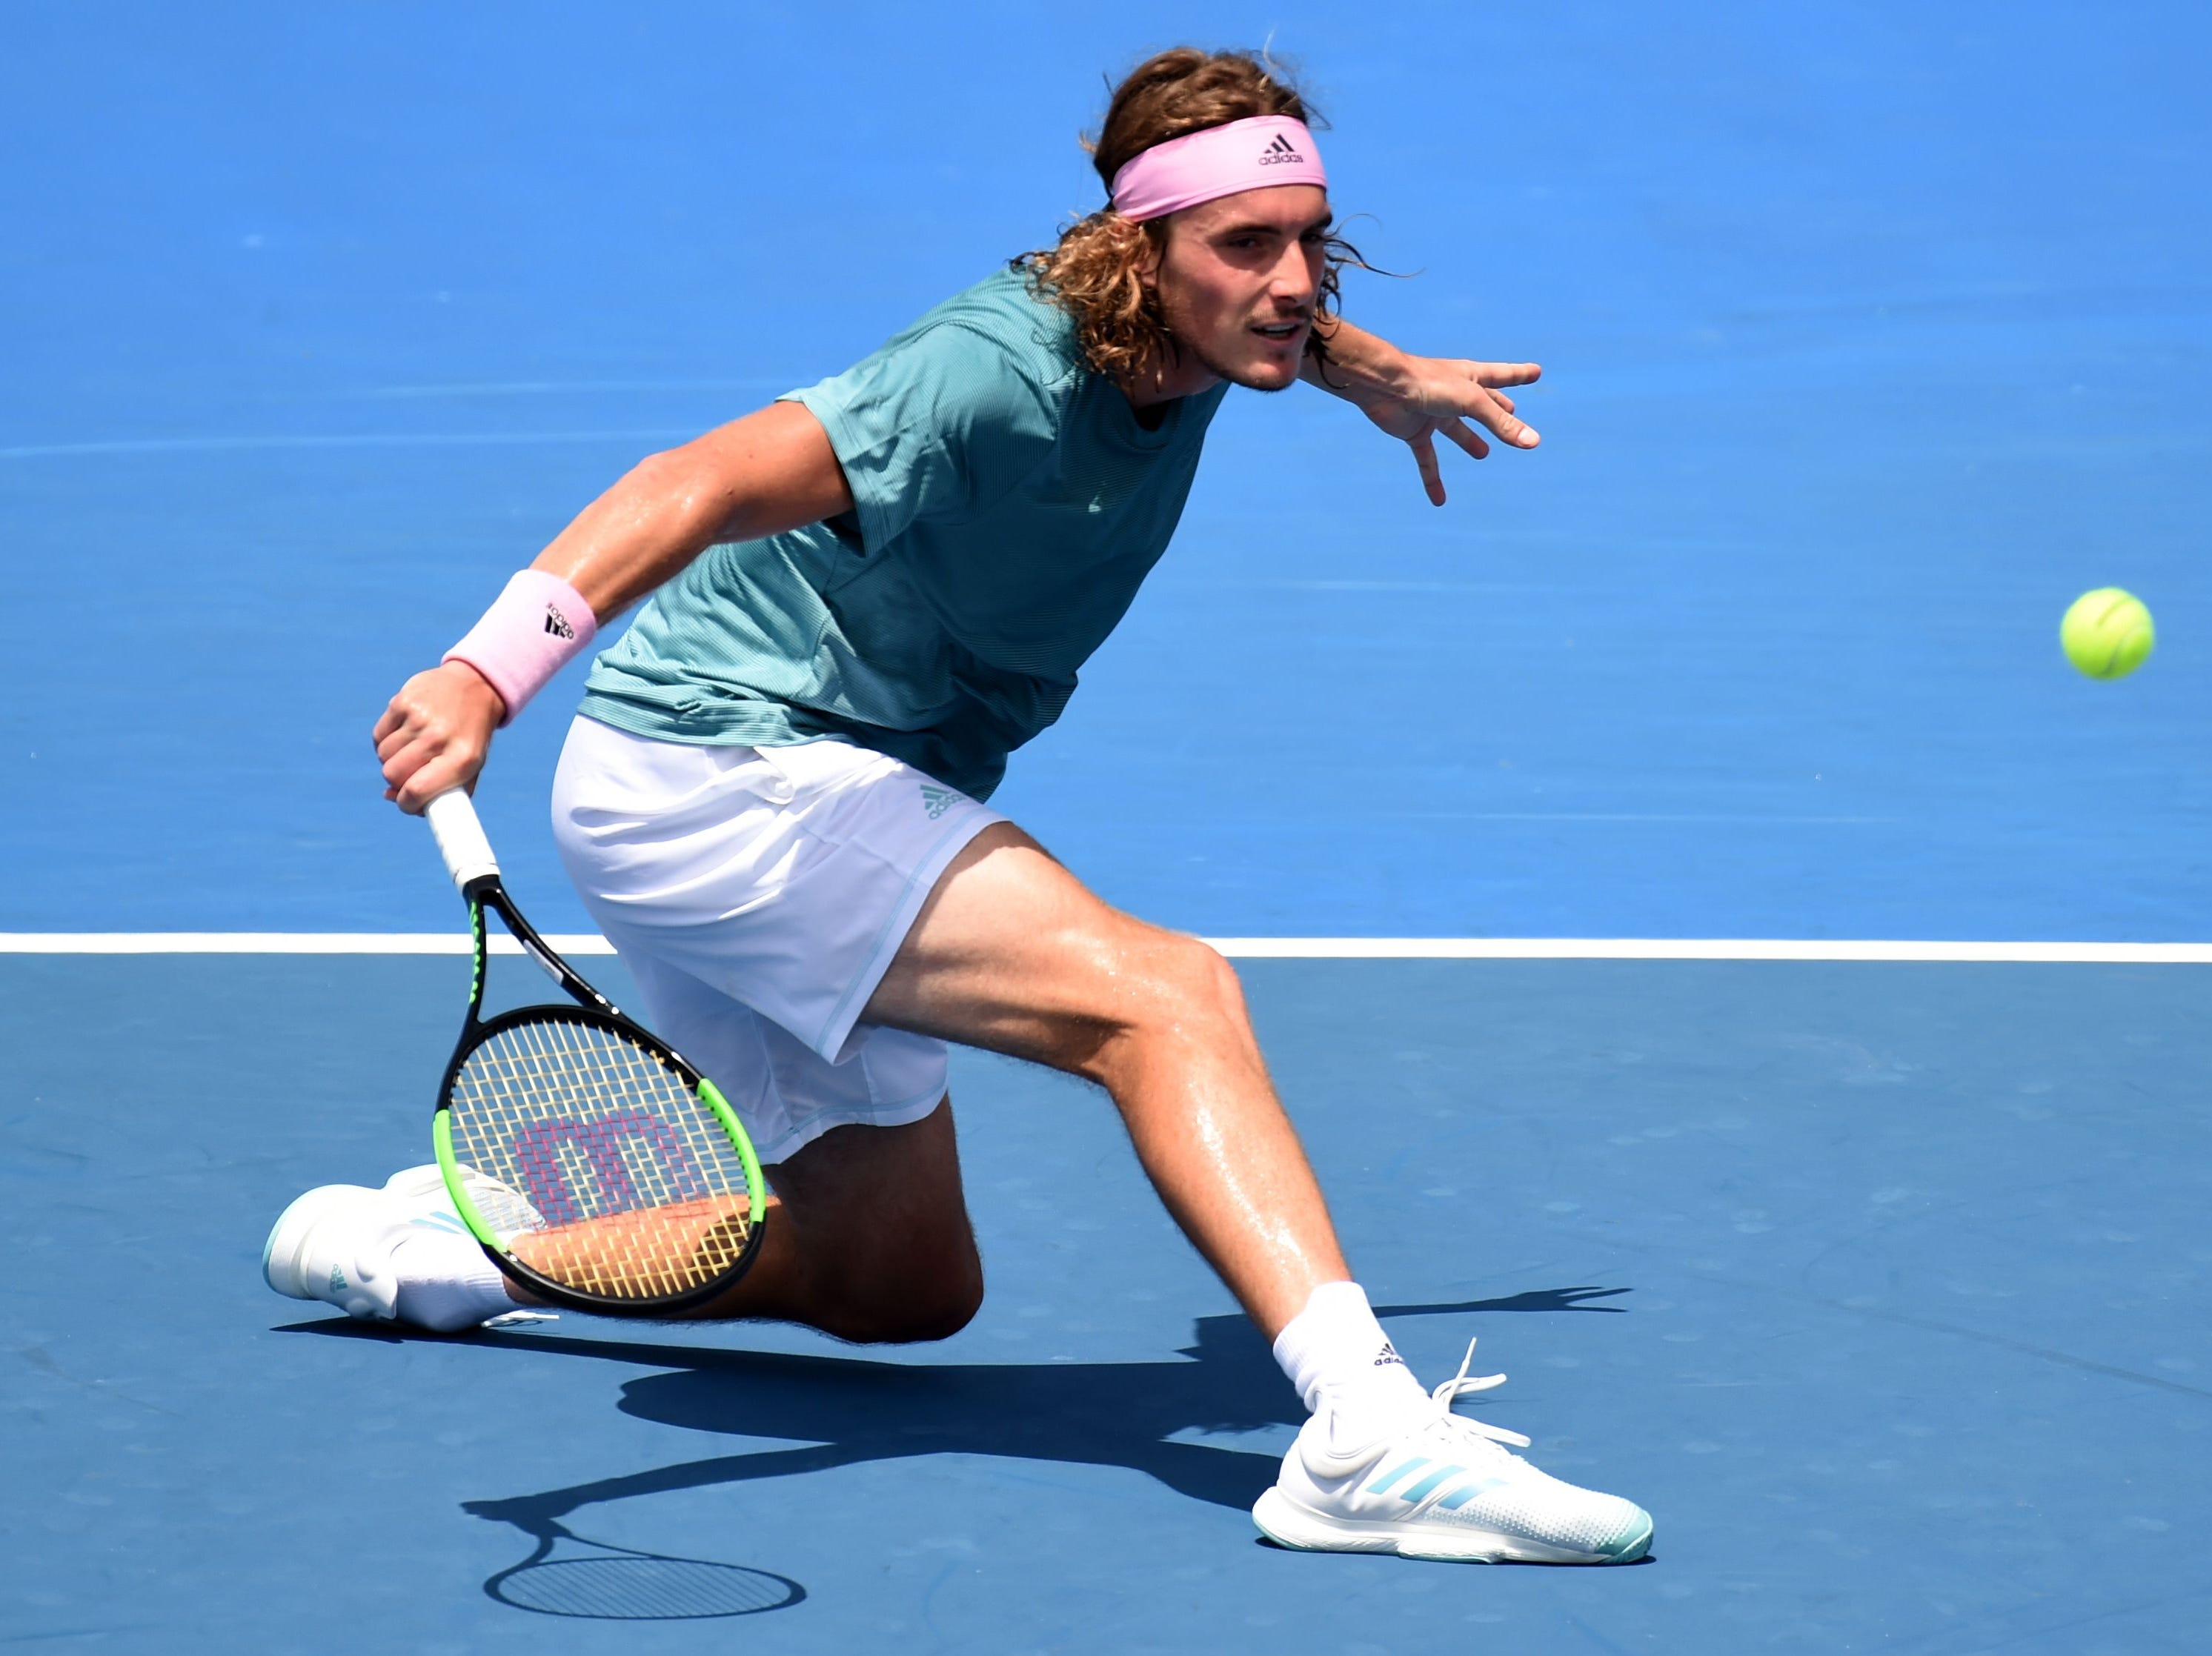 No. 14 Stefanos Tsitsipas of Greece plays a backhand during his 6-3, 2-6, 6-2, 7-5 second-round victory over Serbia's Viktor Troicki.